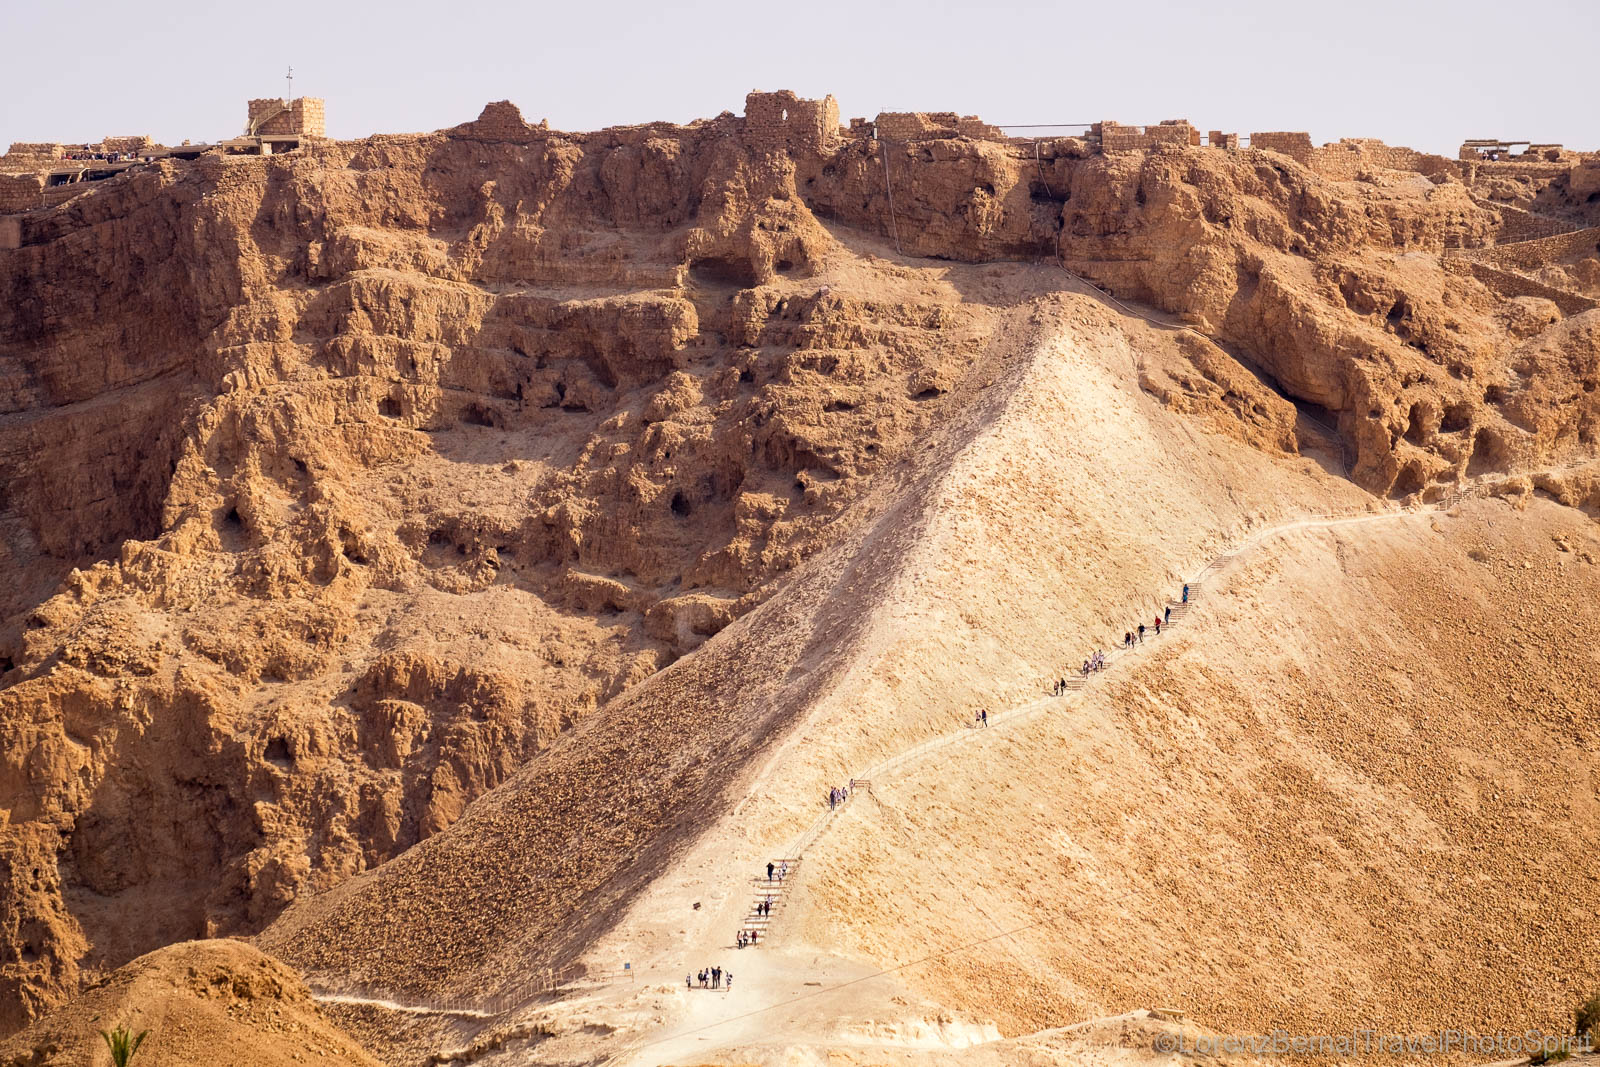 People getting down the rocky slopes of Masada, Judean Desert, Jerusalem.